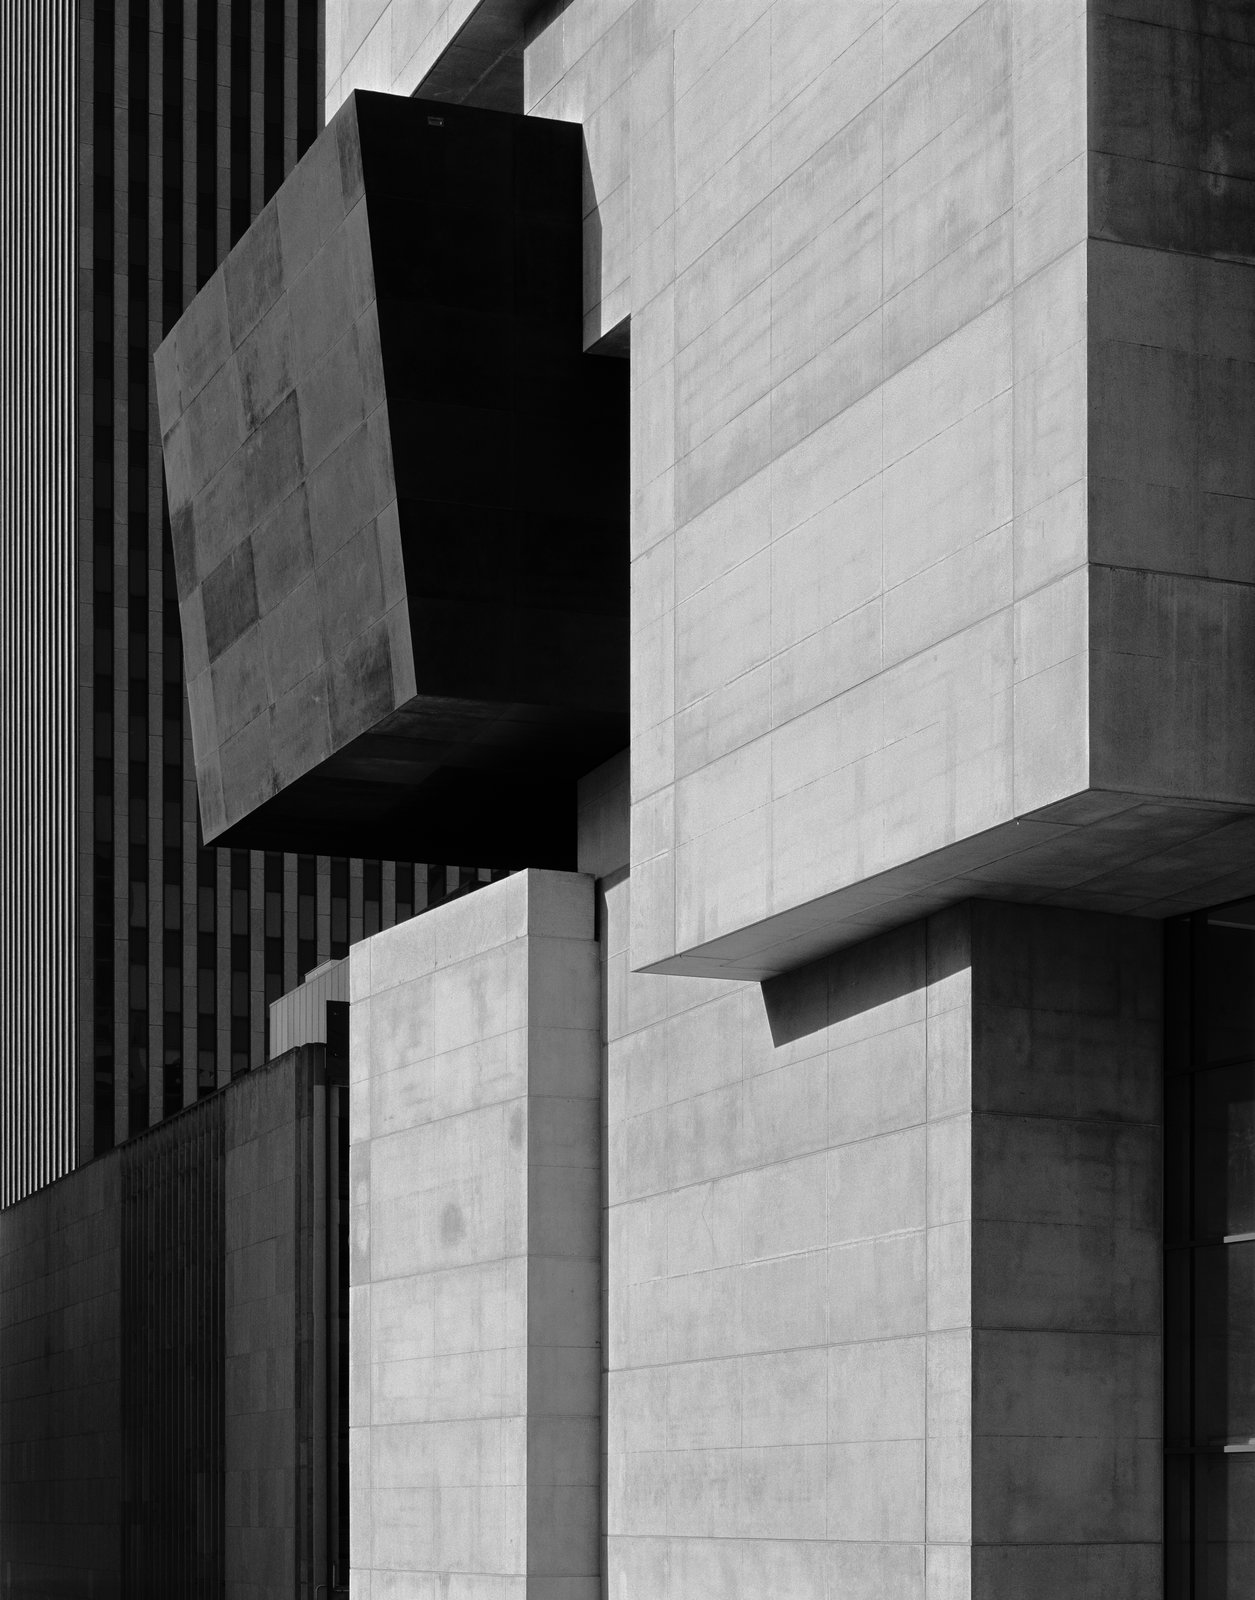 Rosenthal Center for Art, Zaha Hadid, 2003, silver gelatin print.  Photo 8 of 8 in A New Los Angeles Exhibition Celebrates the Architectural Photography of Hélène Binet